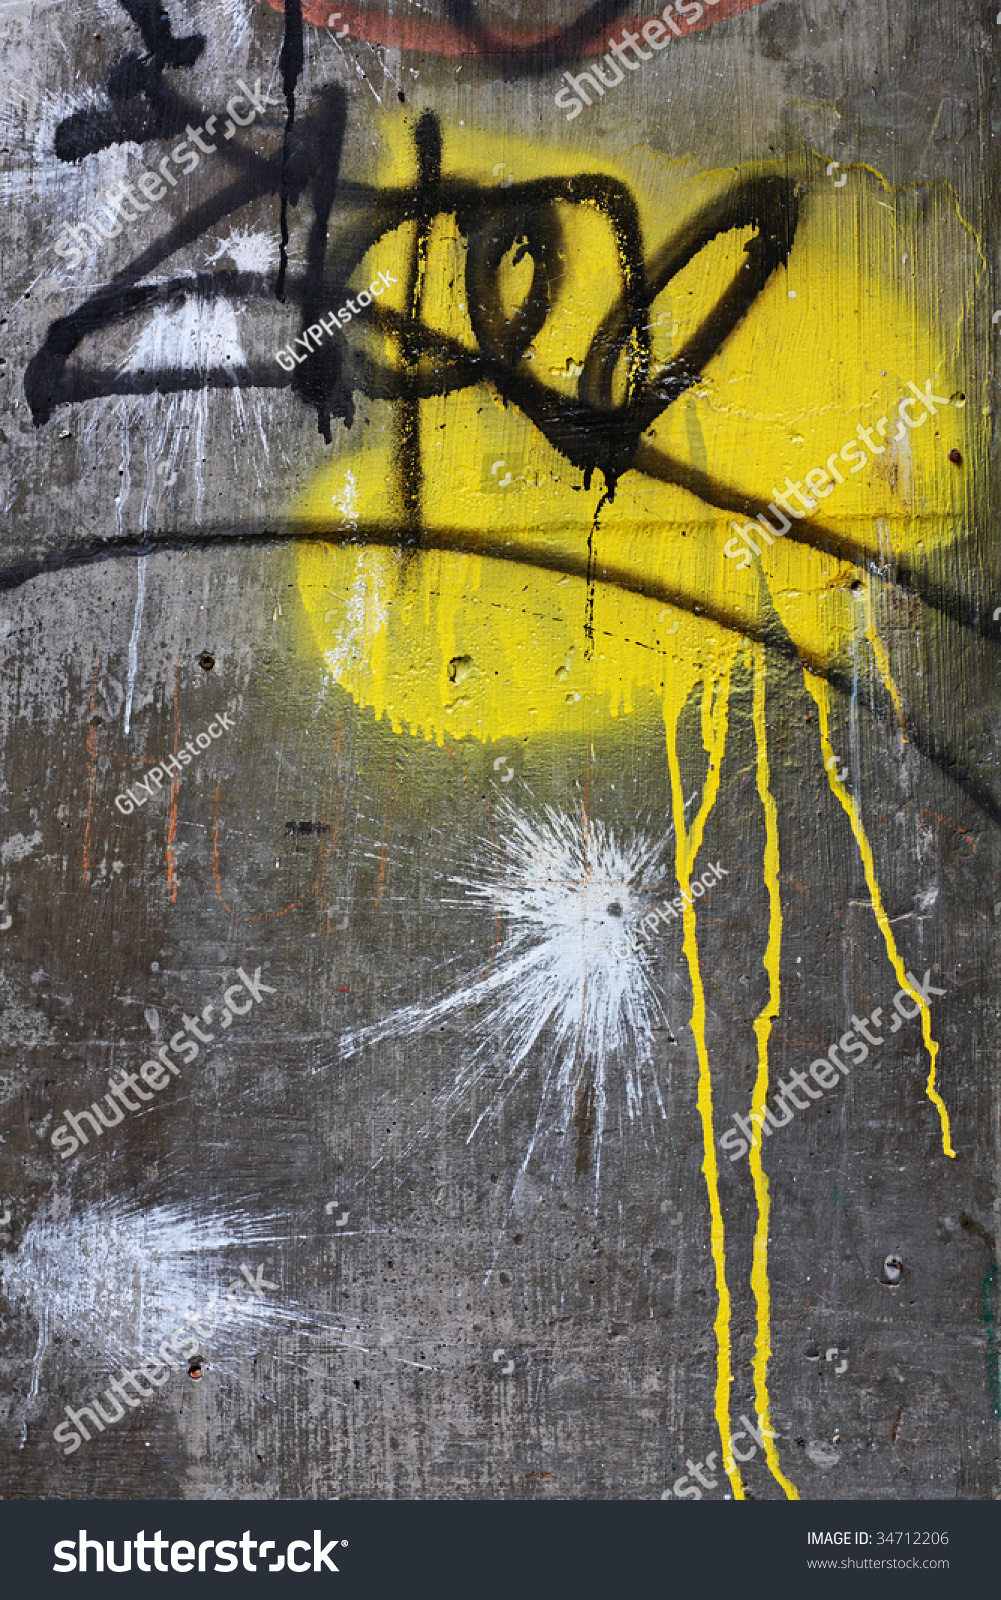 Yellow Spray Paint On Concrete Wall Stock Photo 34712206 - Shutterstock